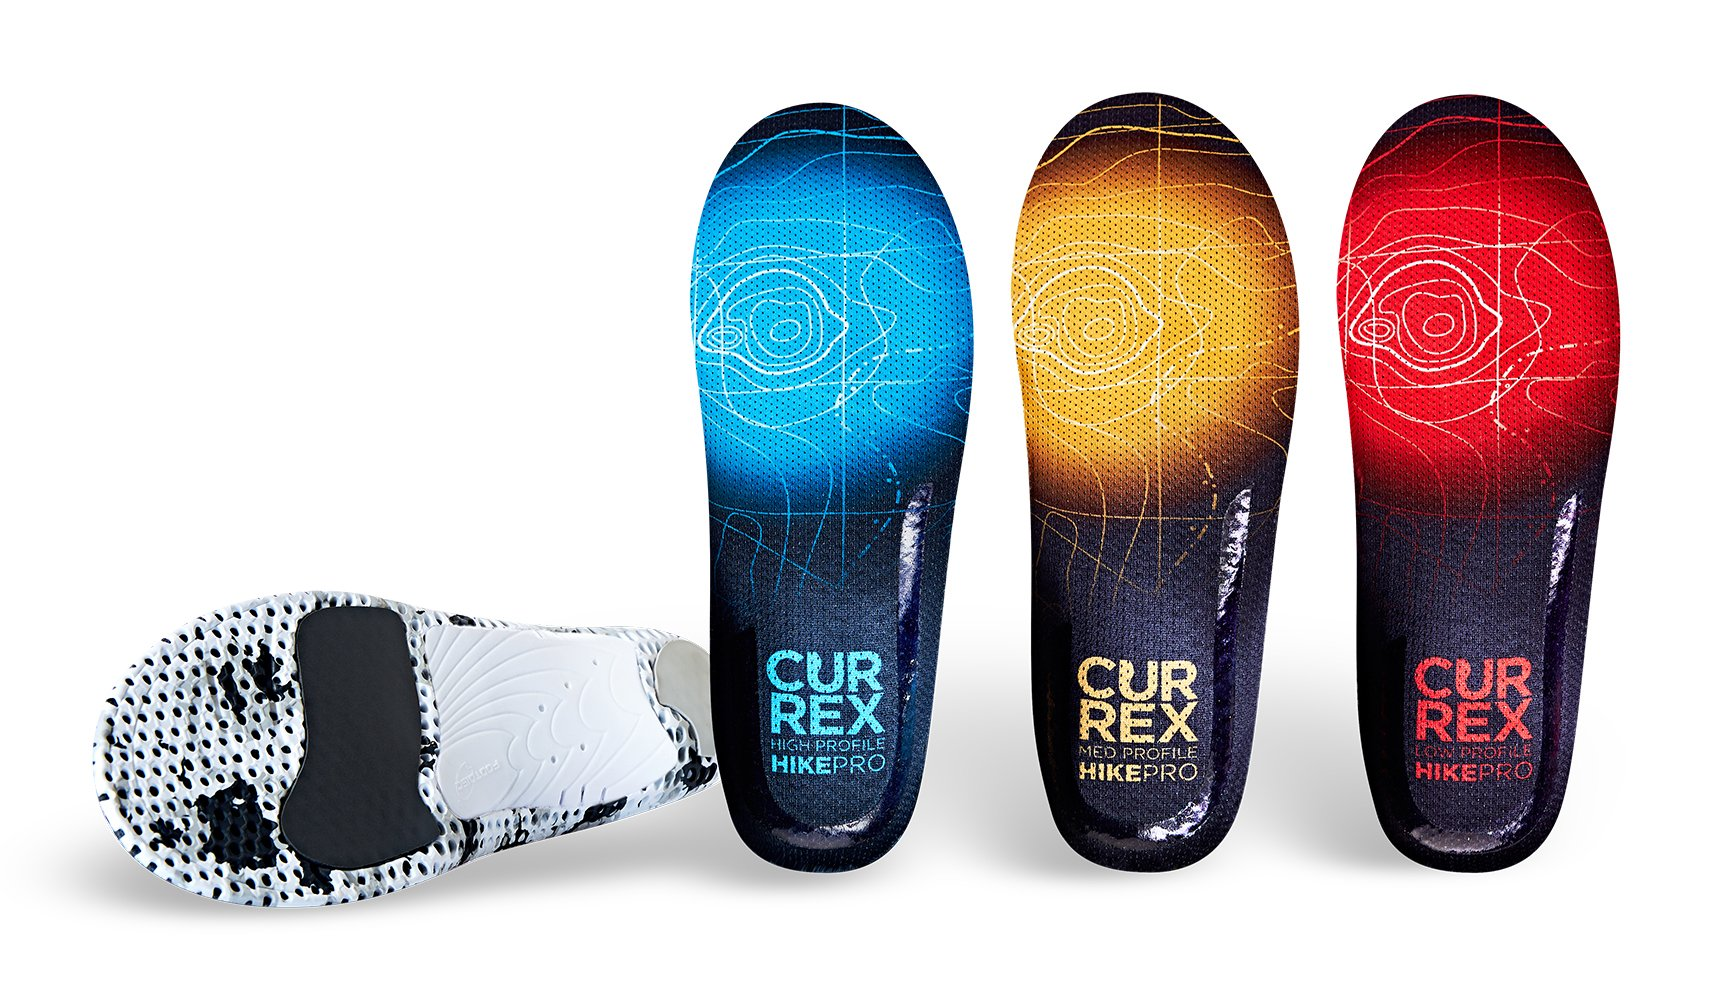 currexSole HikePro Insoles - Europe's Leading Insoles for Lightweight Hiking, Trail Running, Walking - by (Footdisc) - Low Arc XL